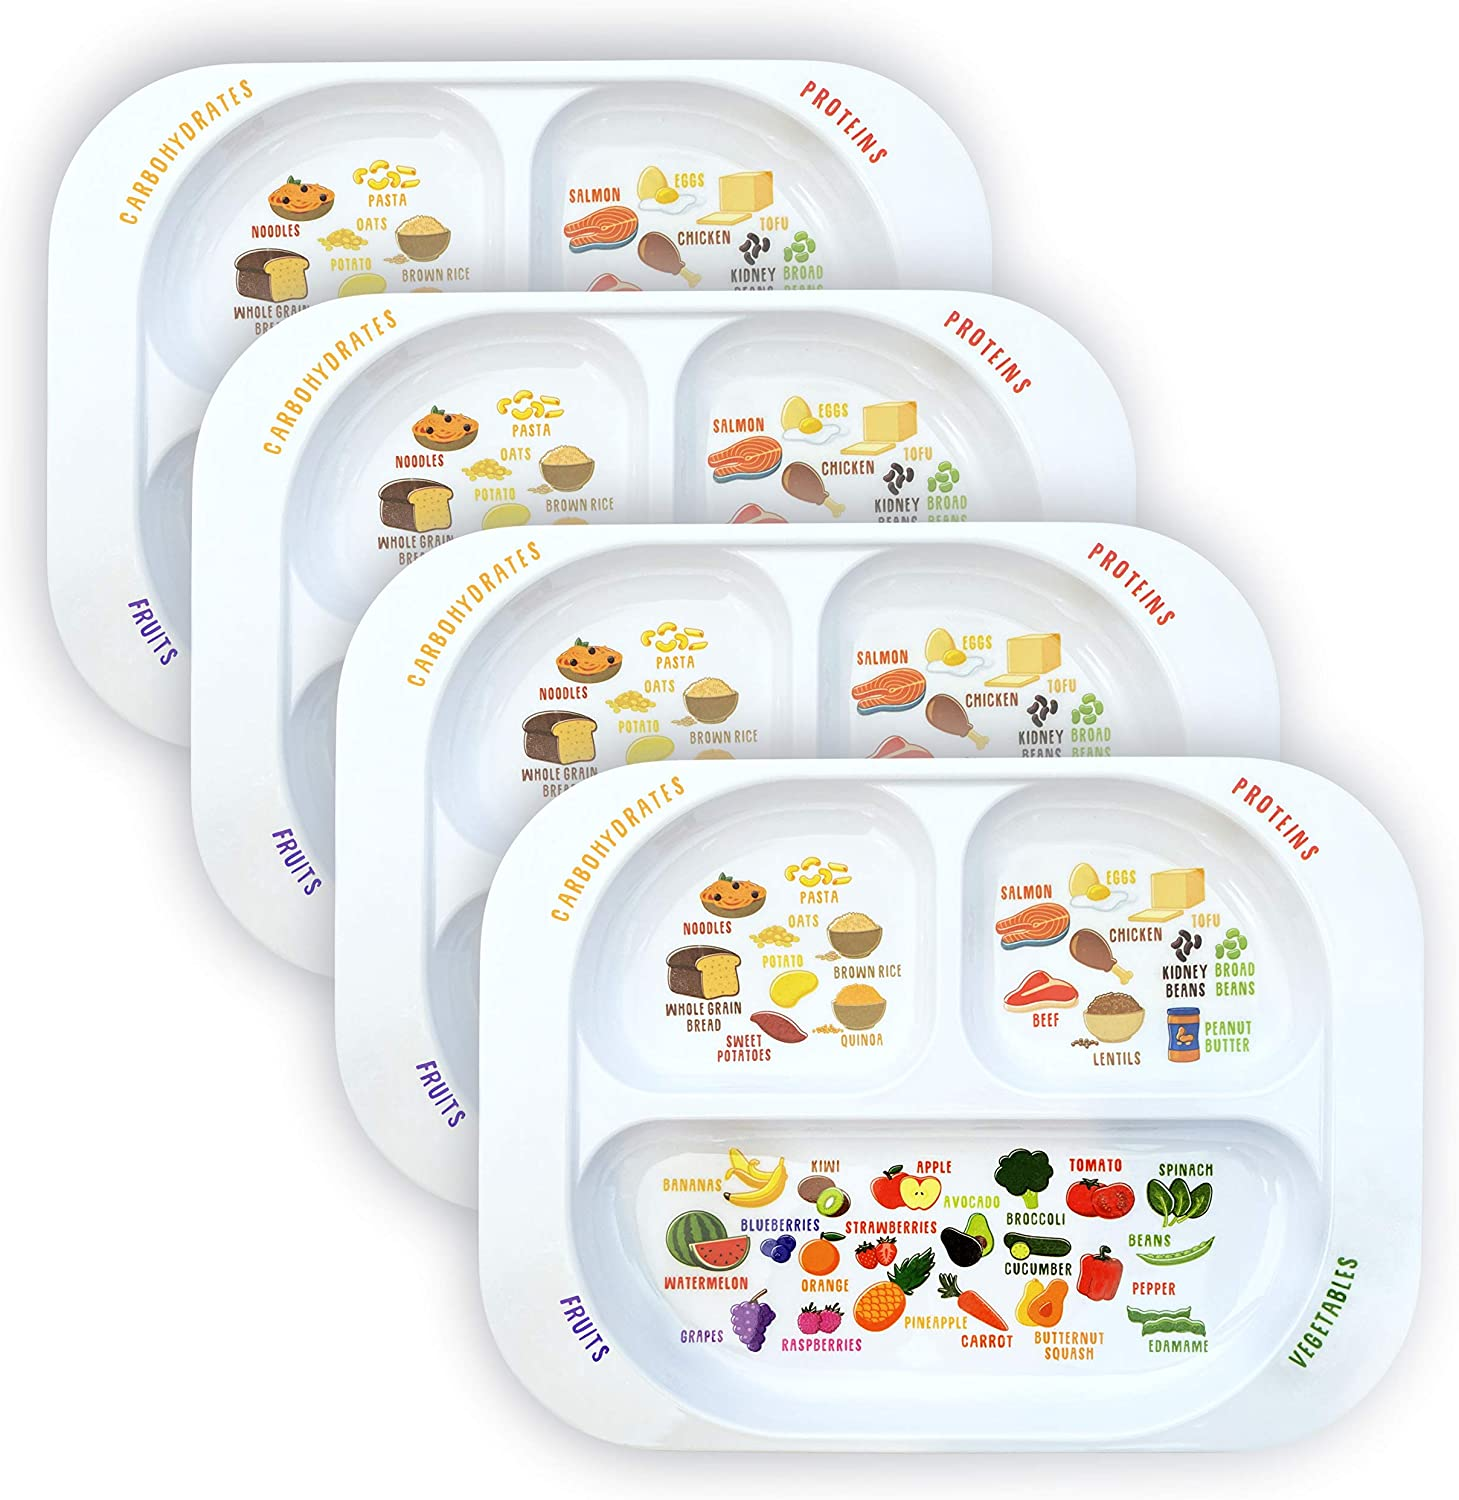 Kid's Healthy Learning Plate | Divided Portion Control for Toddlers & Children | Learn Nutrition & Food Groups | Colorful Sections for Fussy Eaters | Child-Friendly Melamine, Dishwasher-Safe (4 Pack)